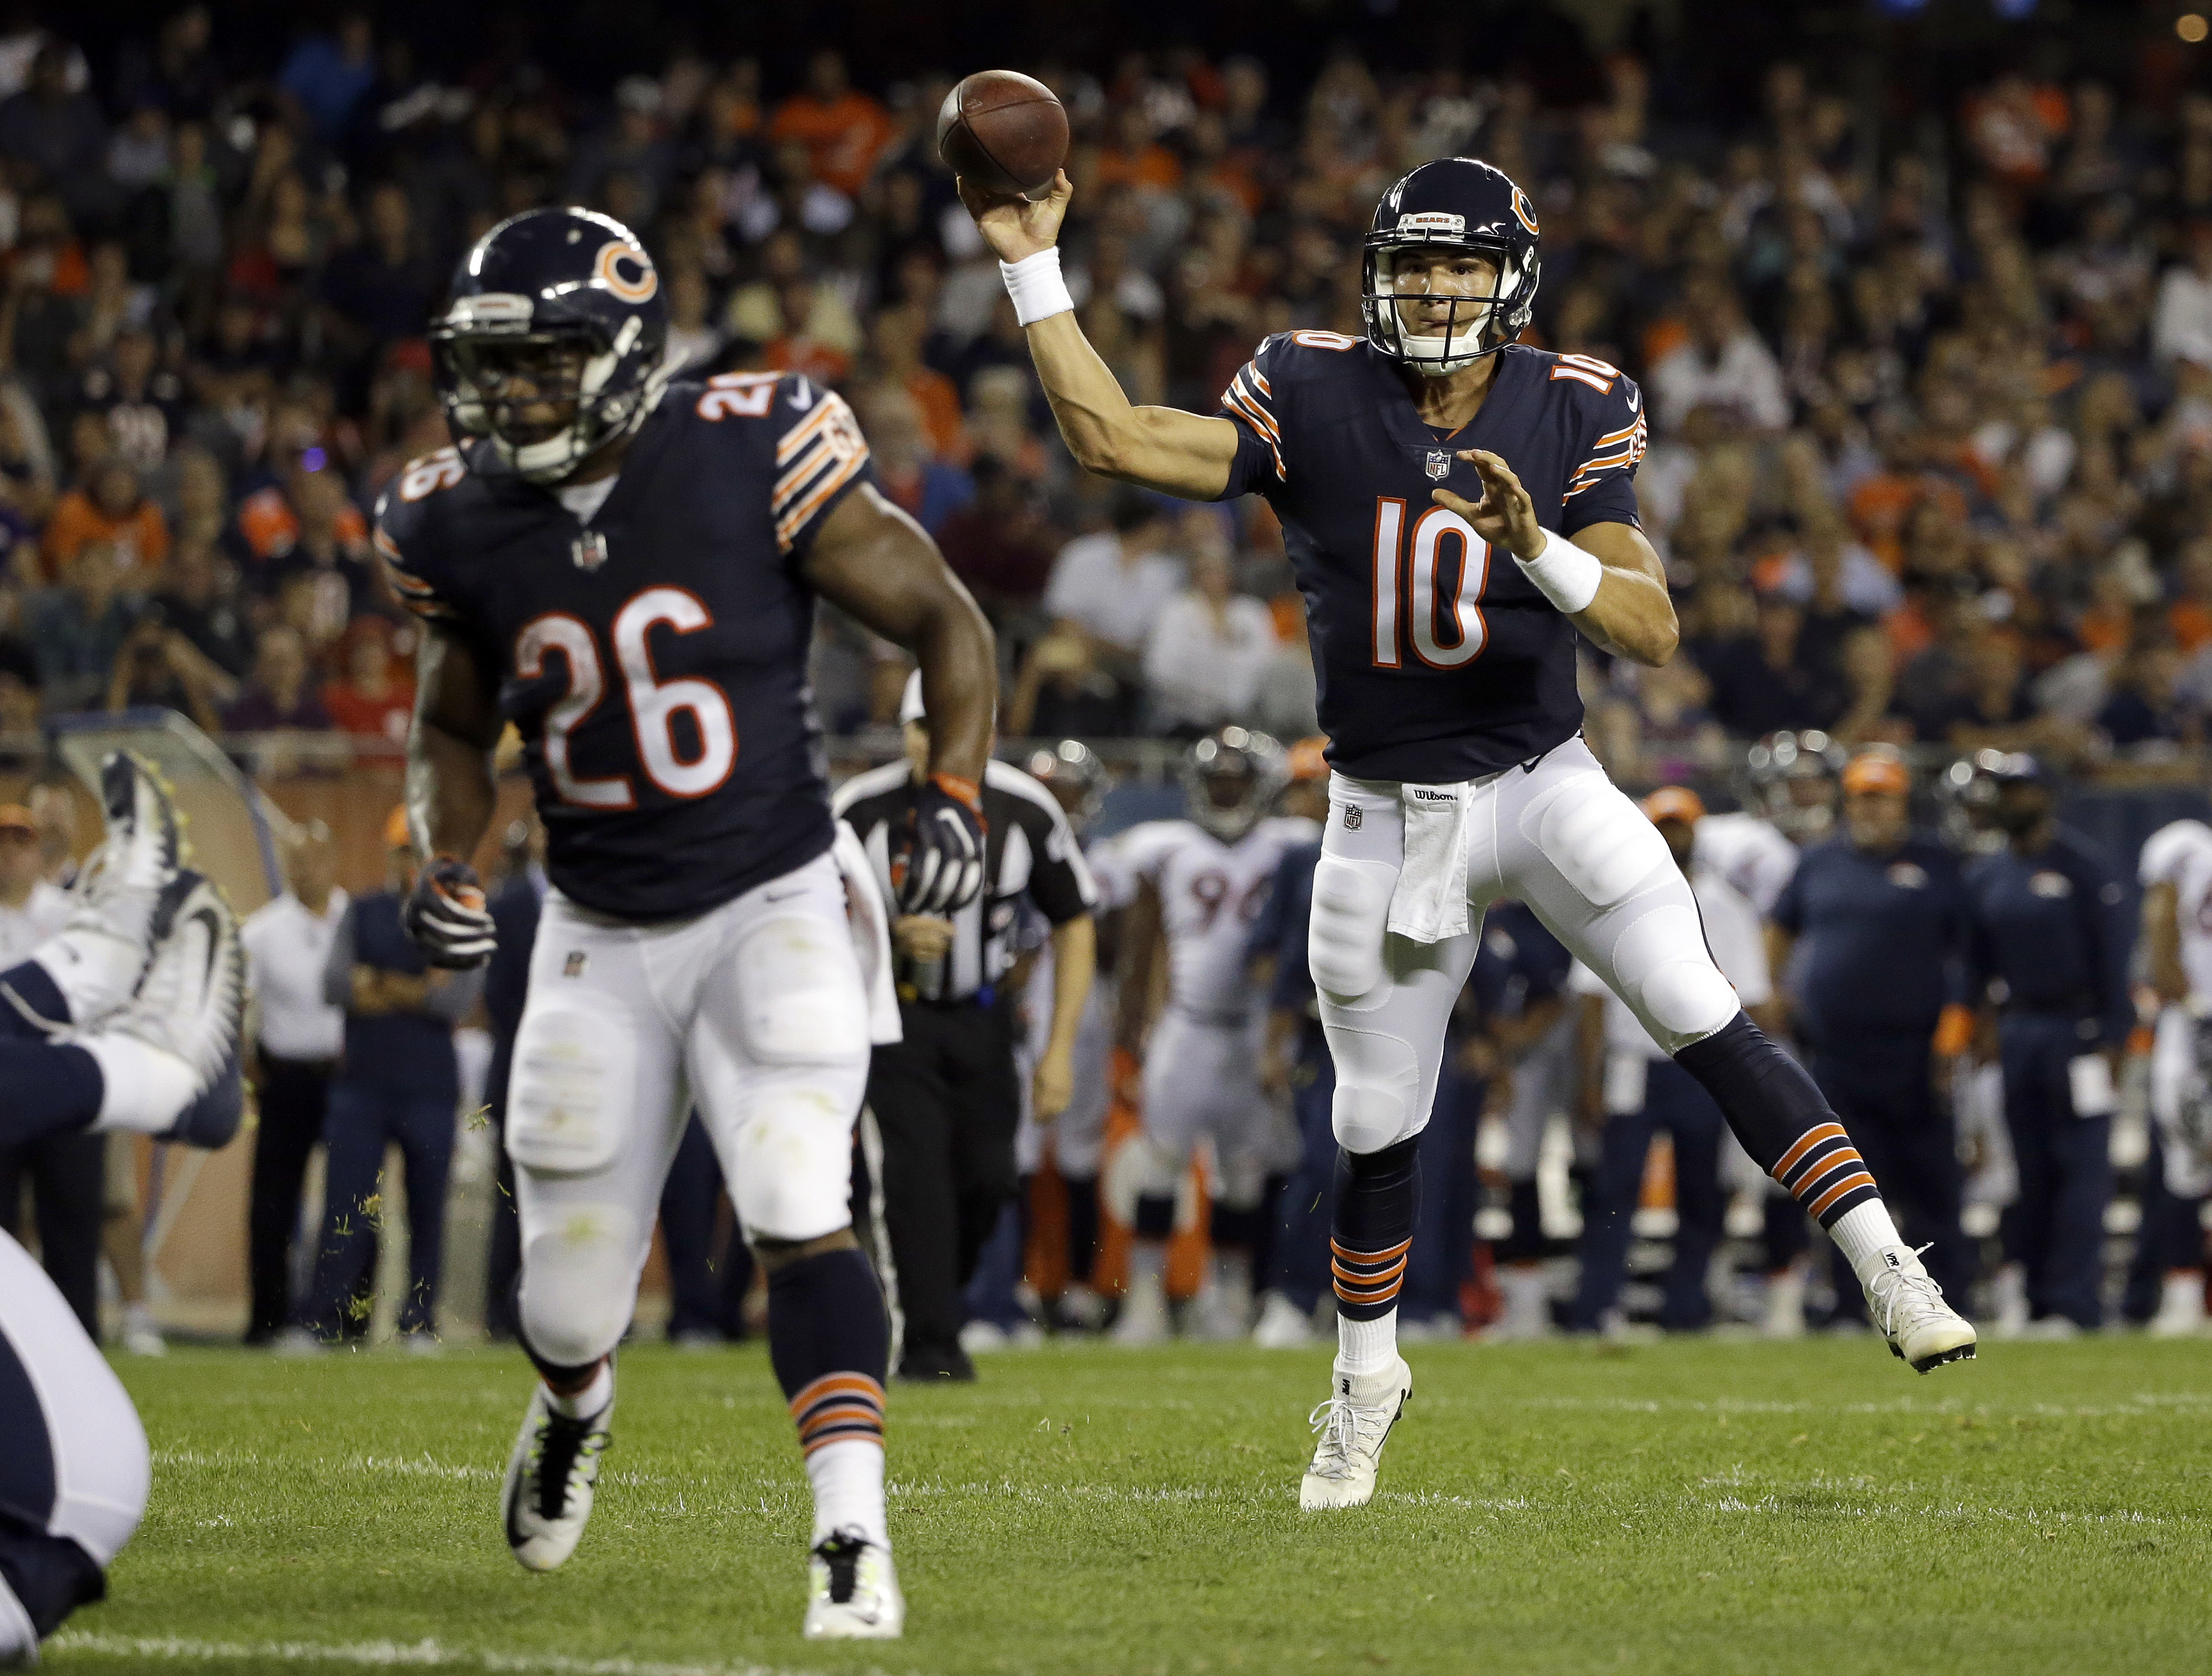 Five players to watch: What will Mitch Trubisky do for an encore?